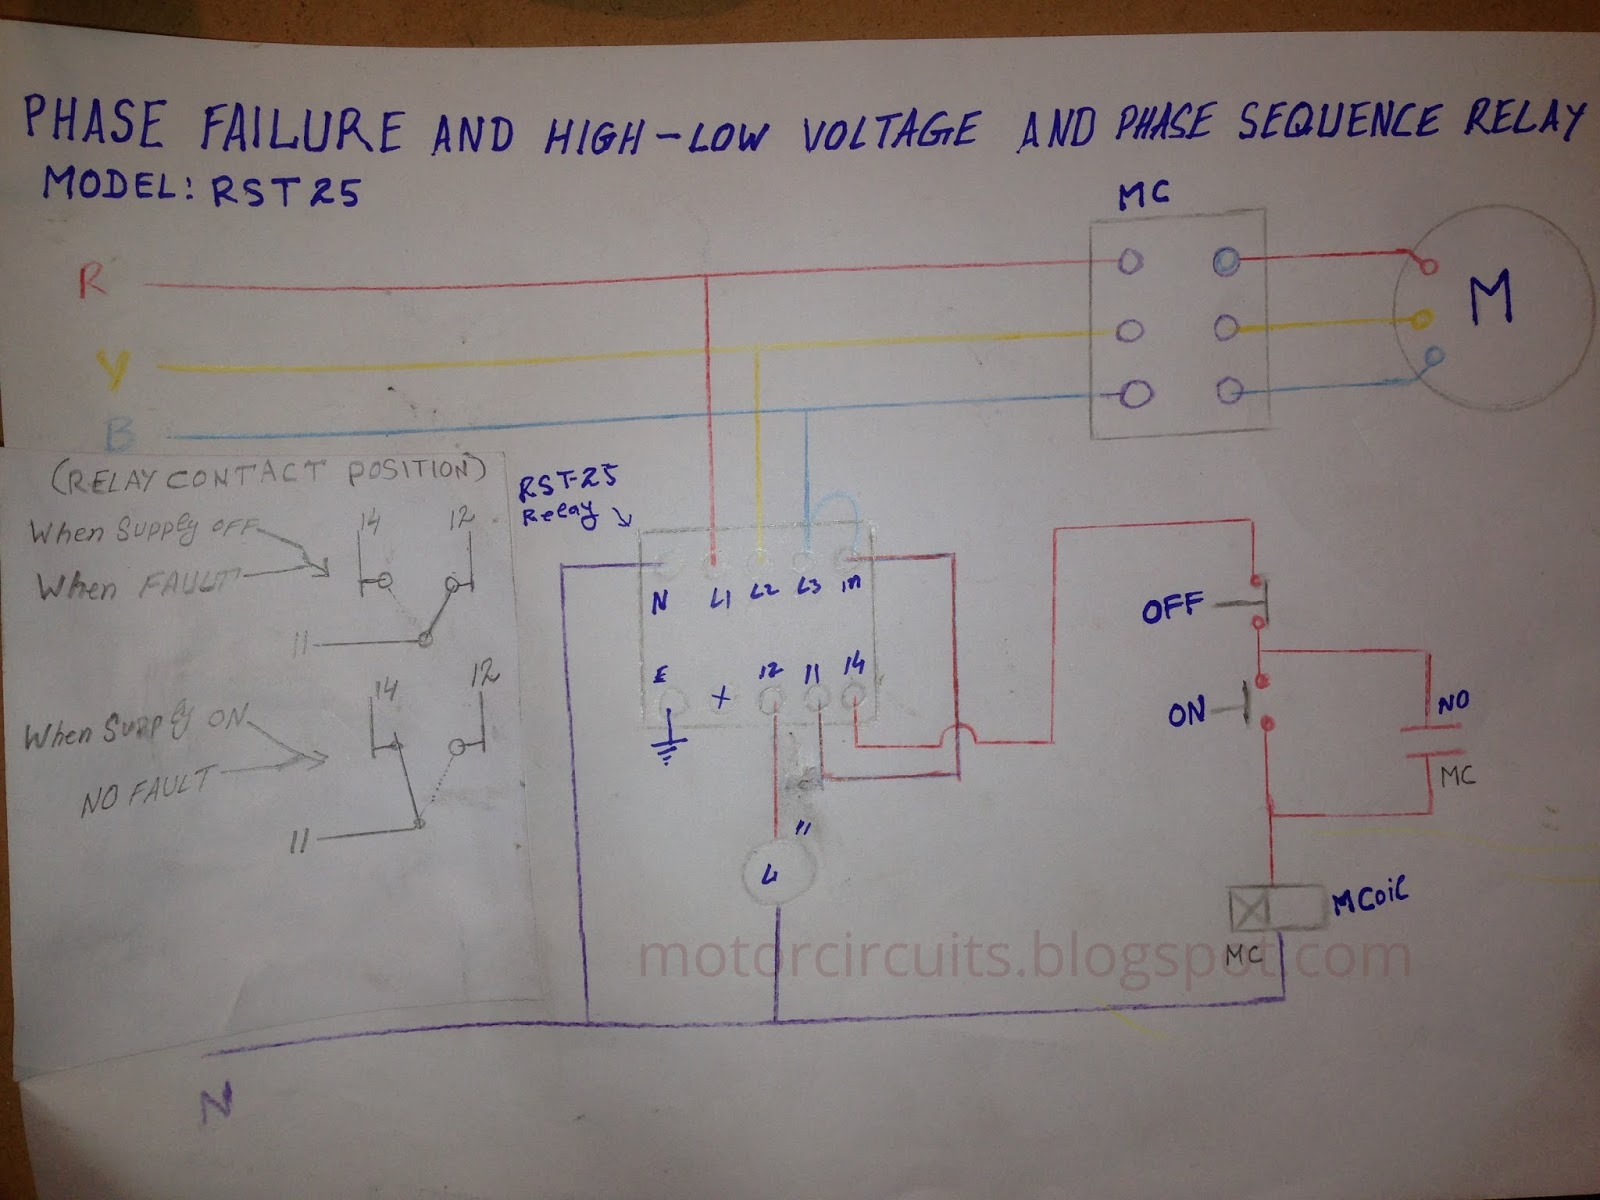 motor circuits phase failure relay for motor circuit protection